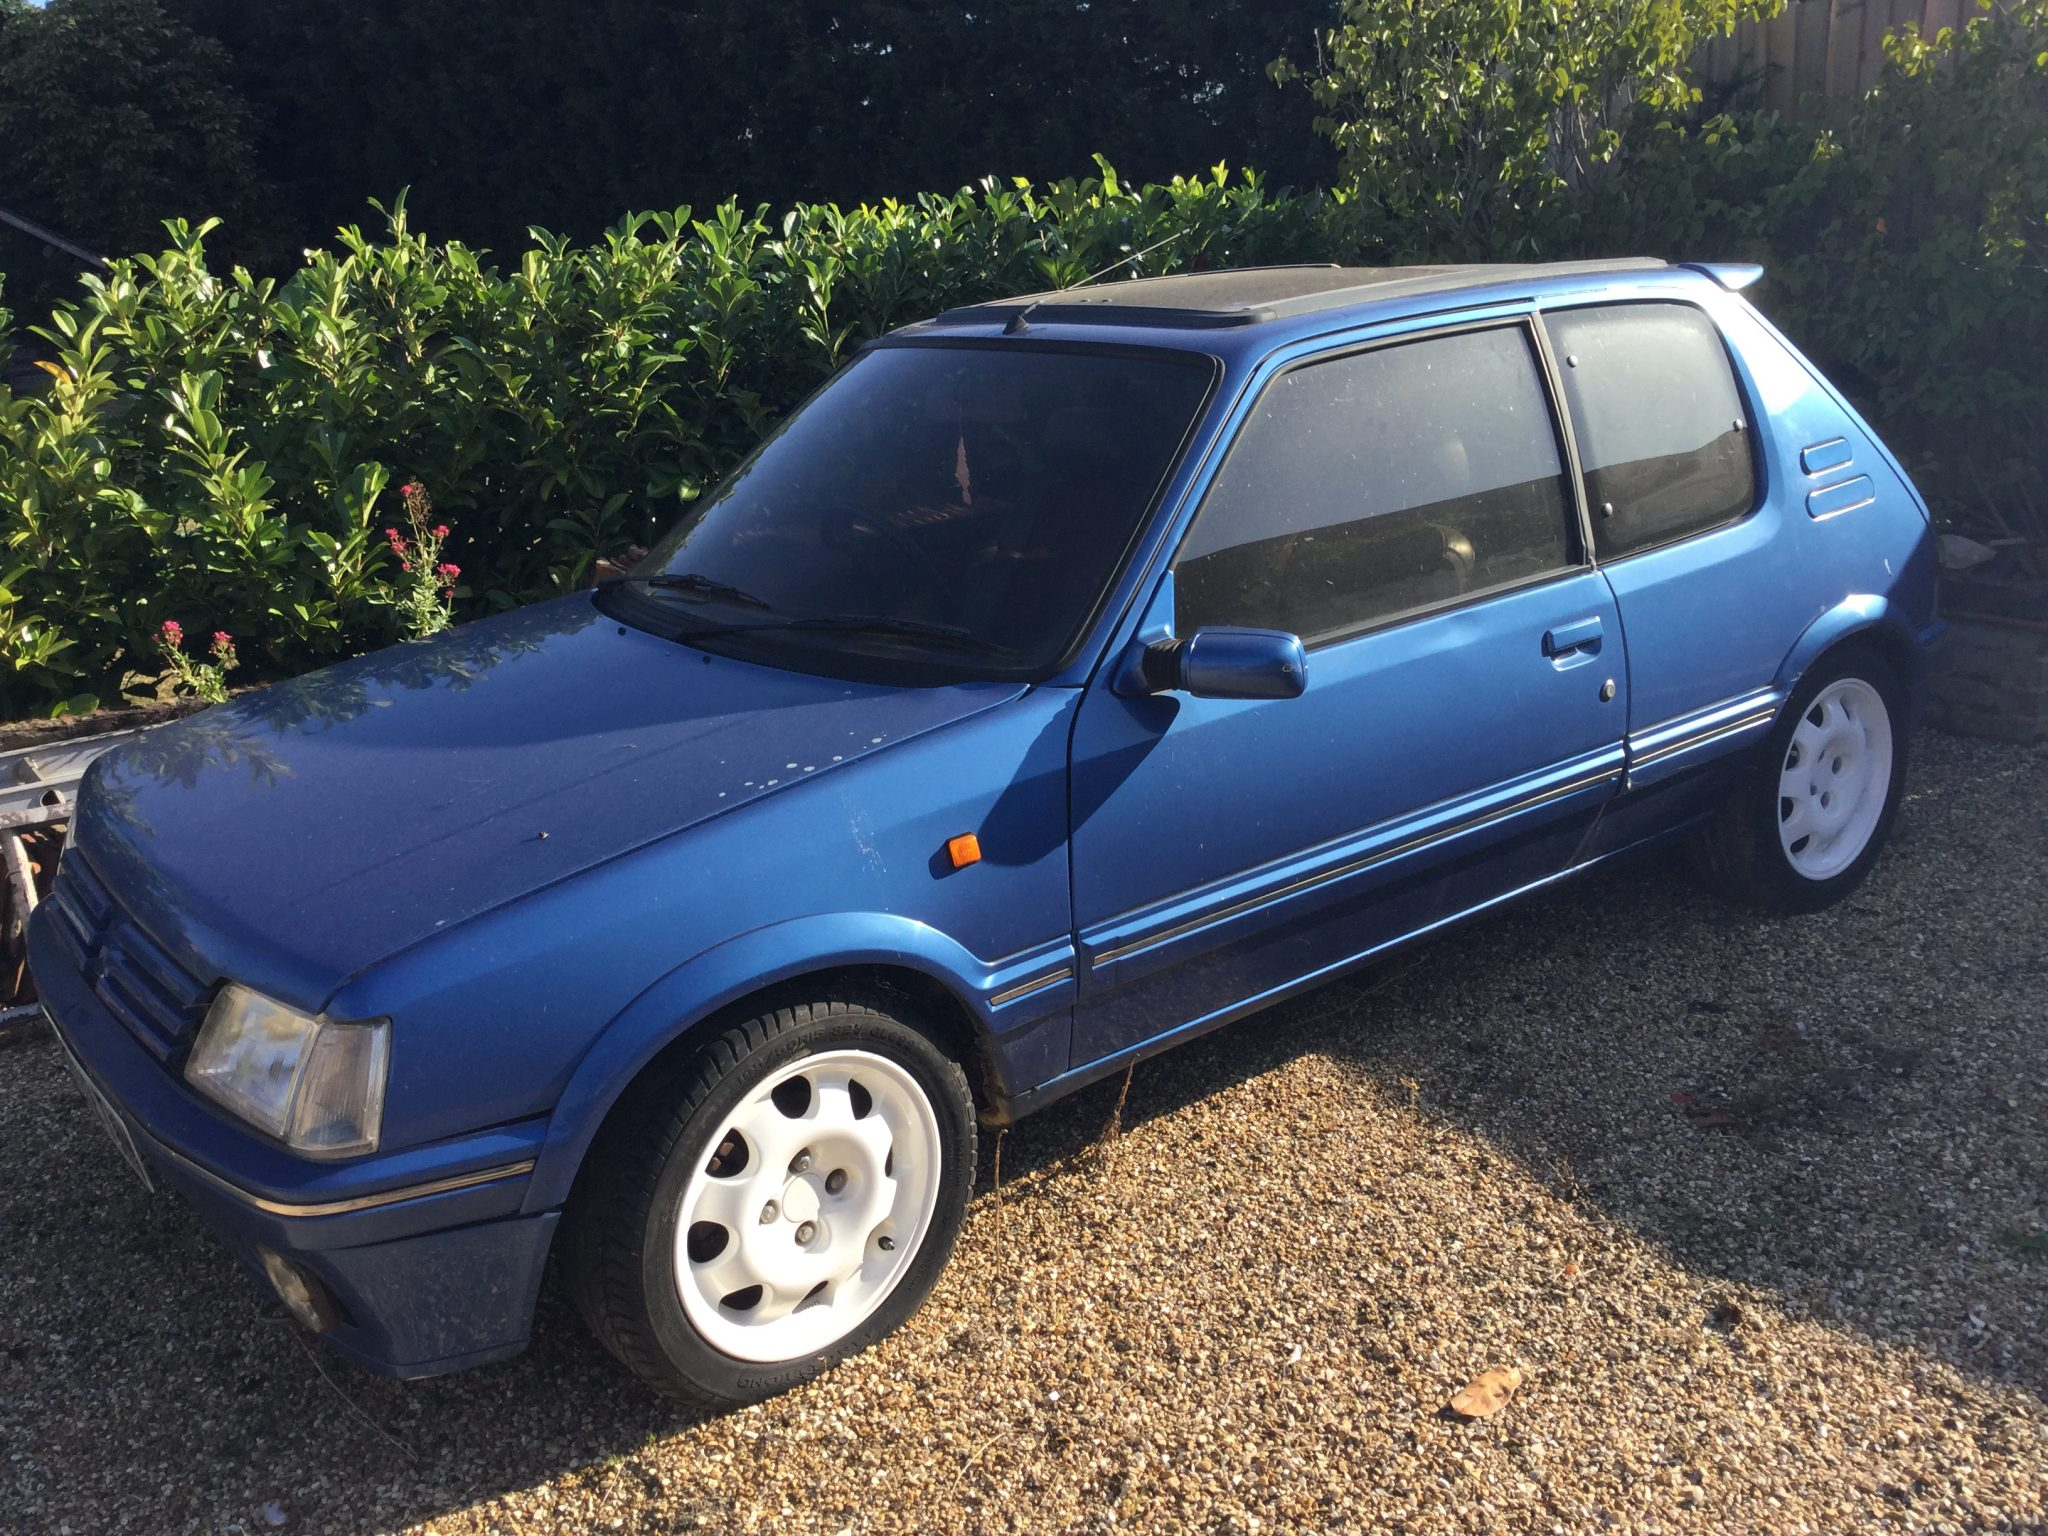 One for the future: 1991 Peugeot 205 GTi